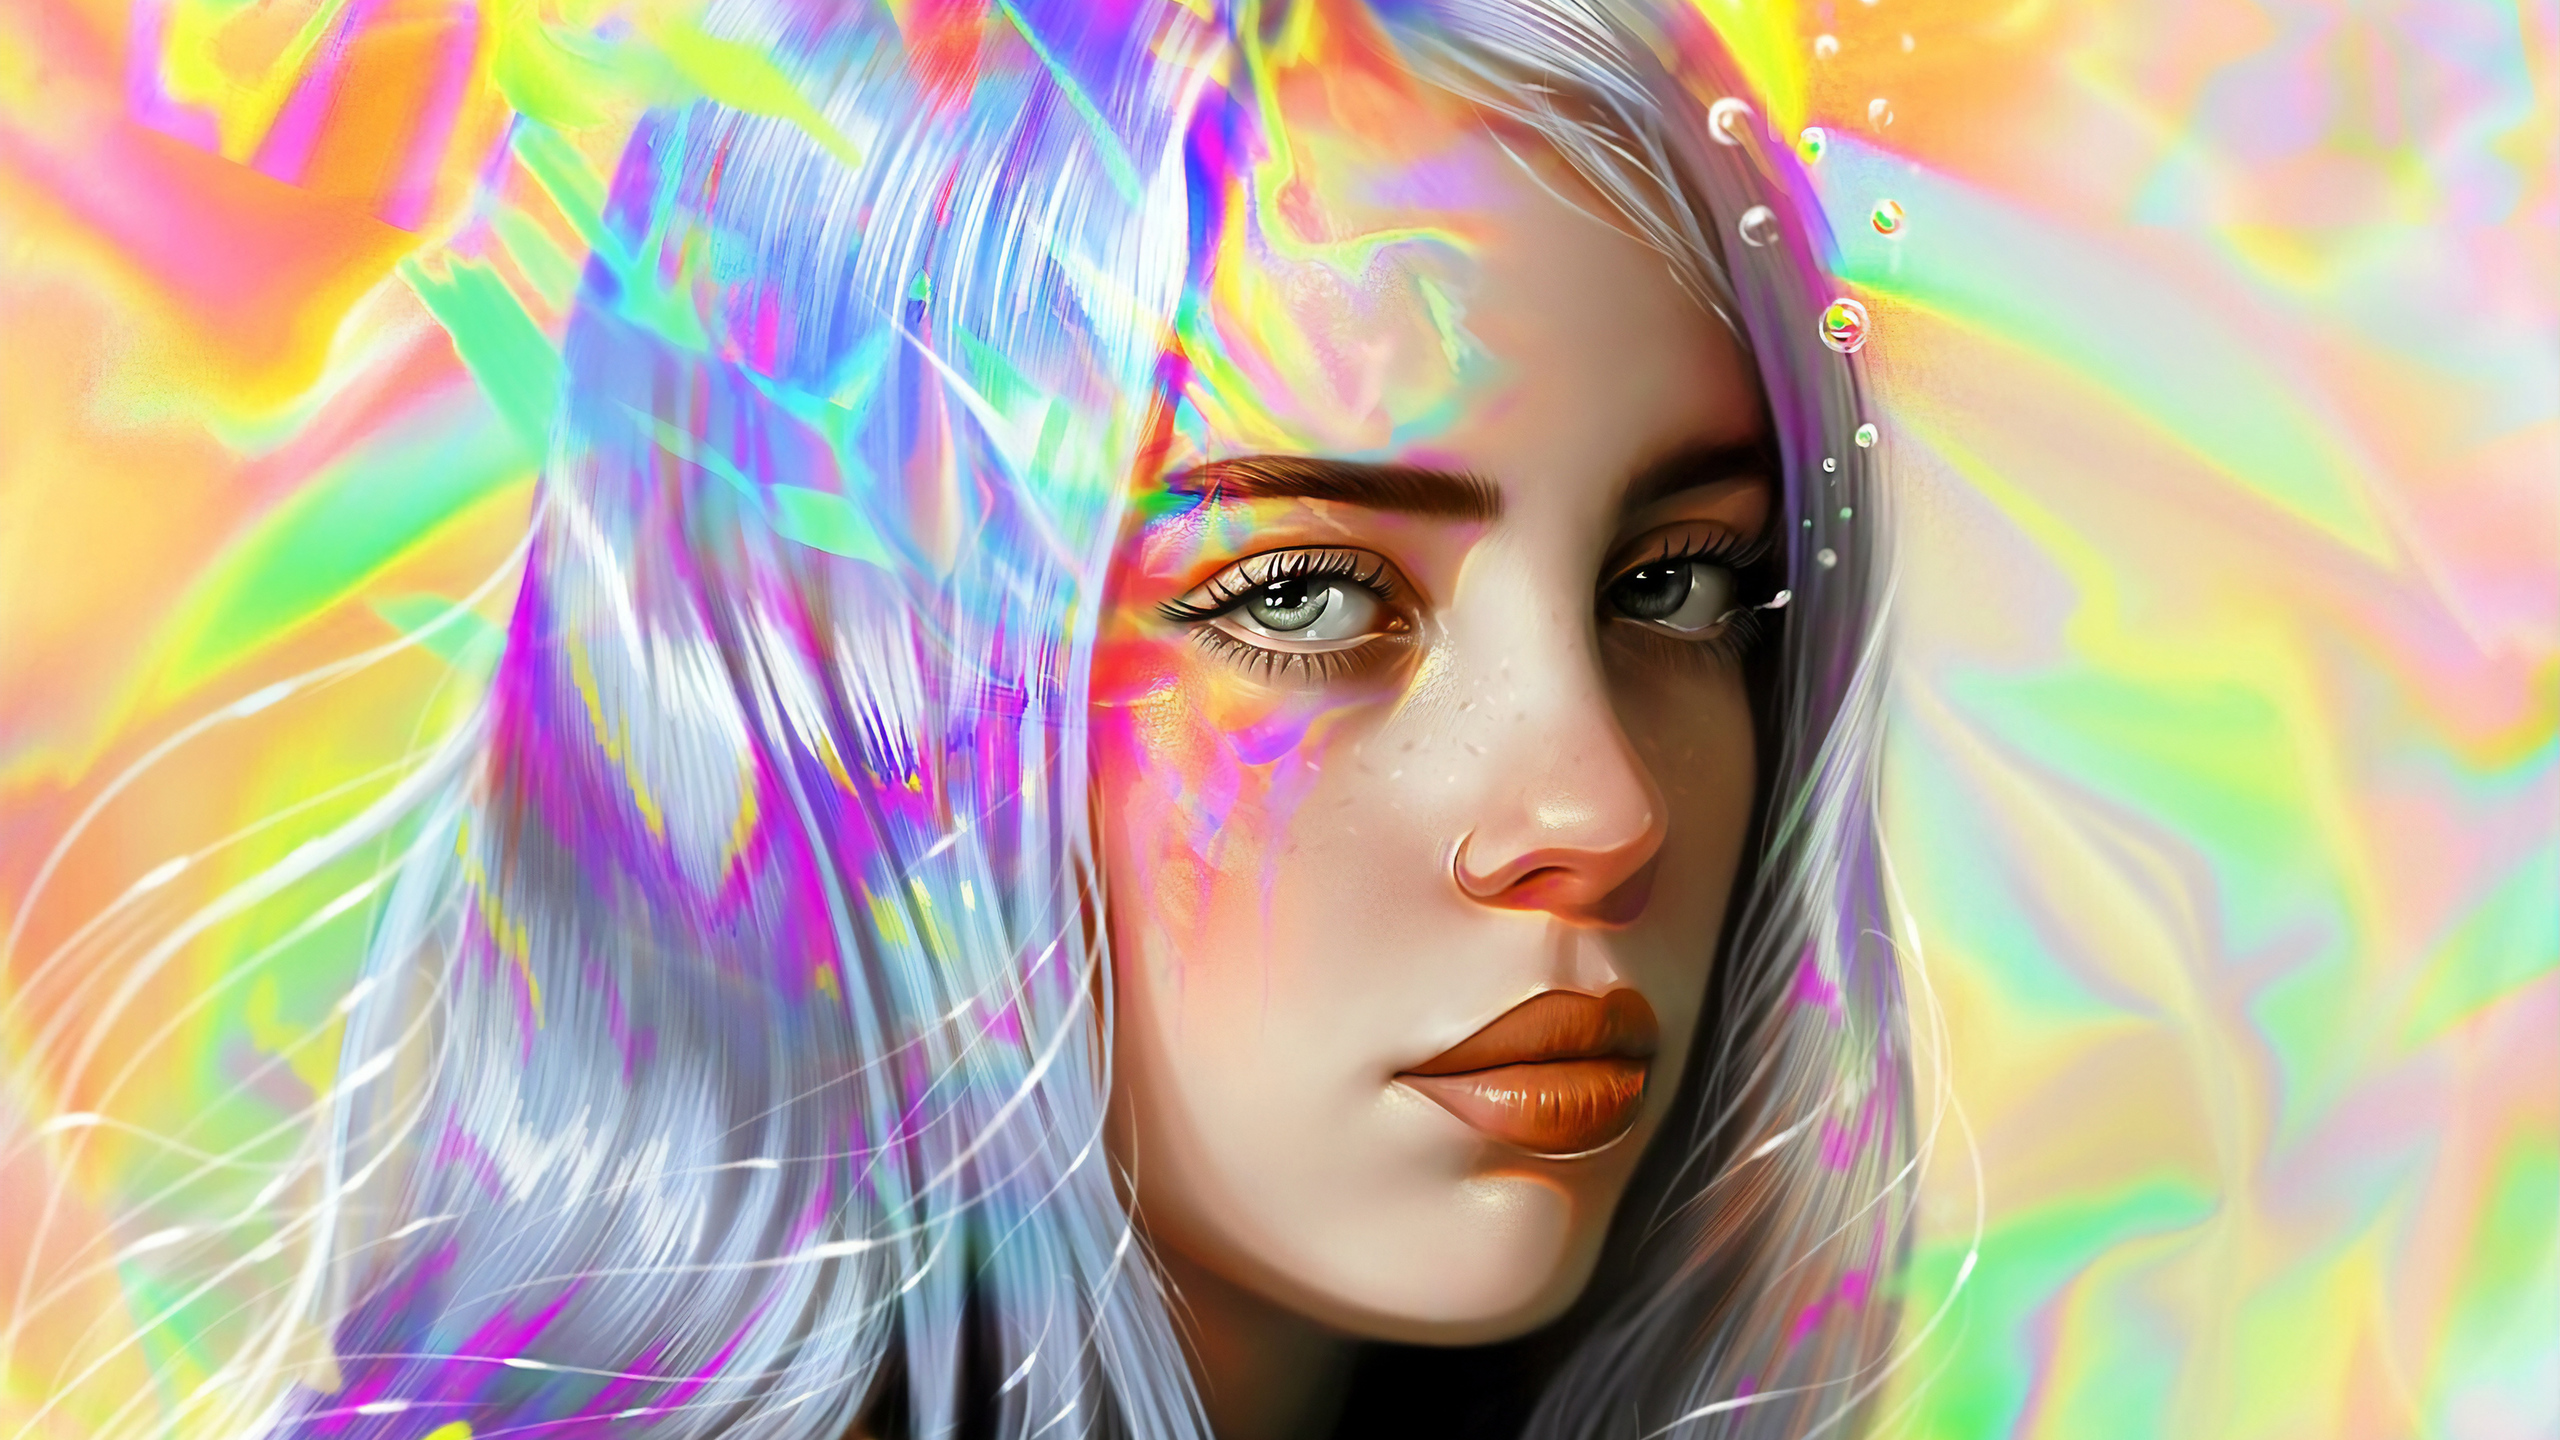 2560x1440 Billie Eilish Art 5k 1440p Resolution Hd 4k Wallpapers Images Backgrounds Photos And Pictures